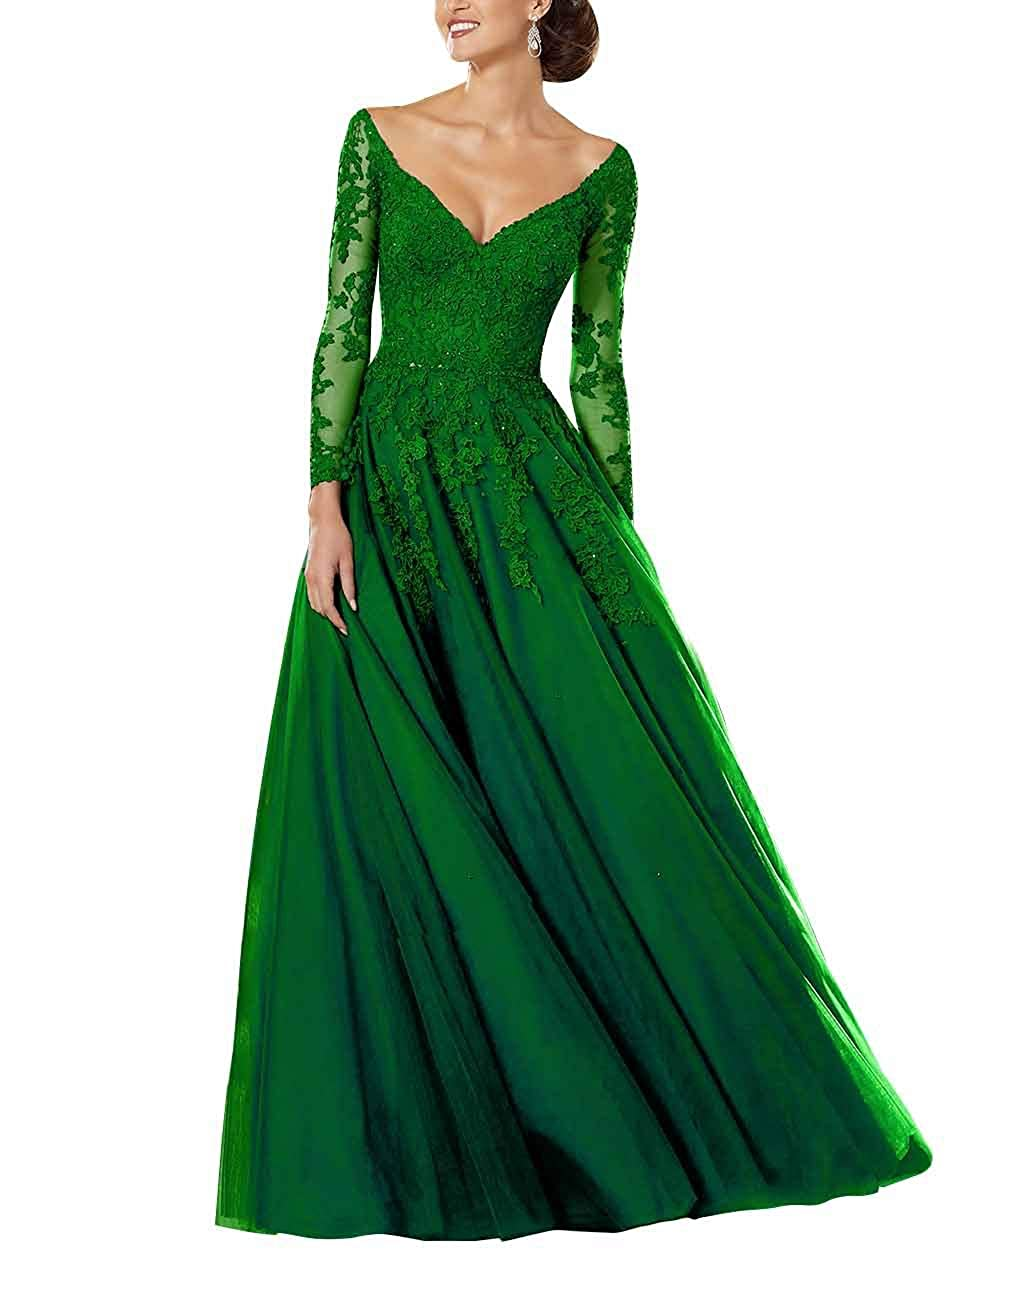 Green Staypretty Aline Prom Gowns for Women Applique Beaded Mother of Bride Dresses Long Sleeve Formal Dress